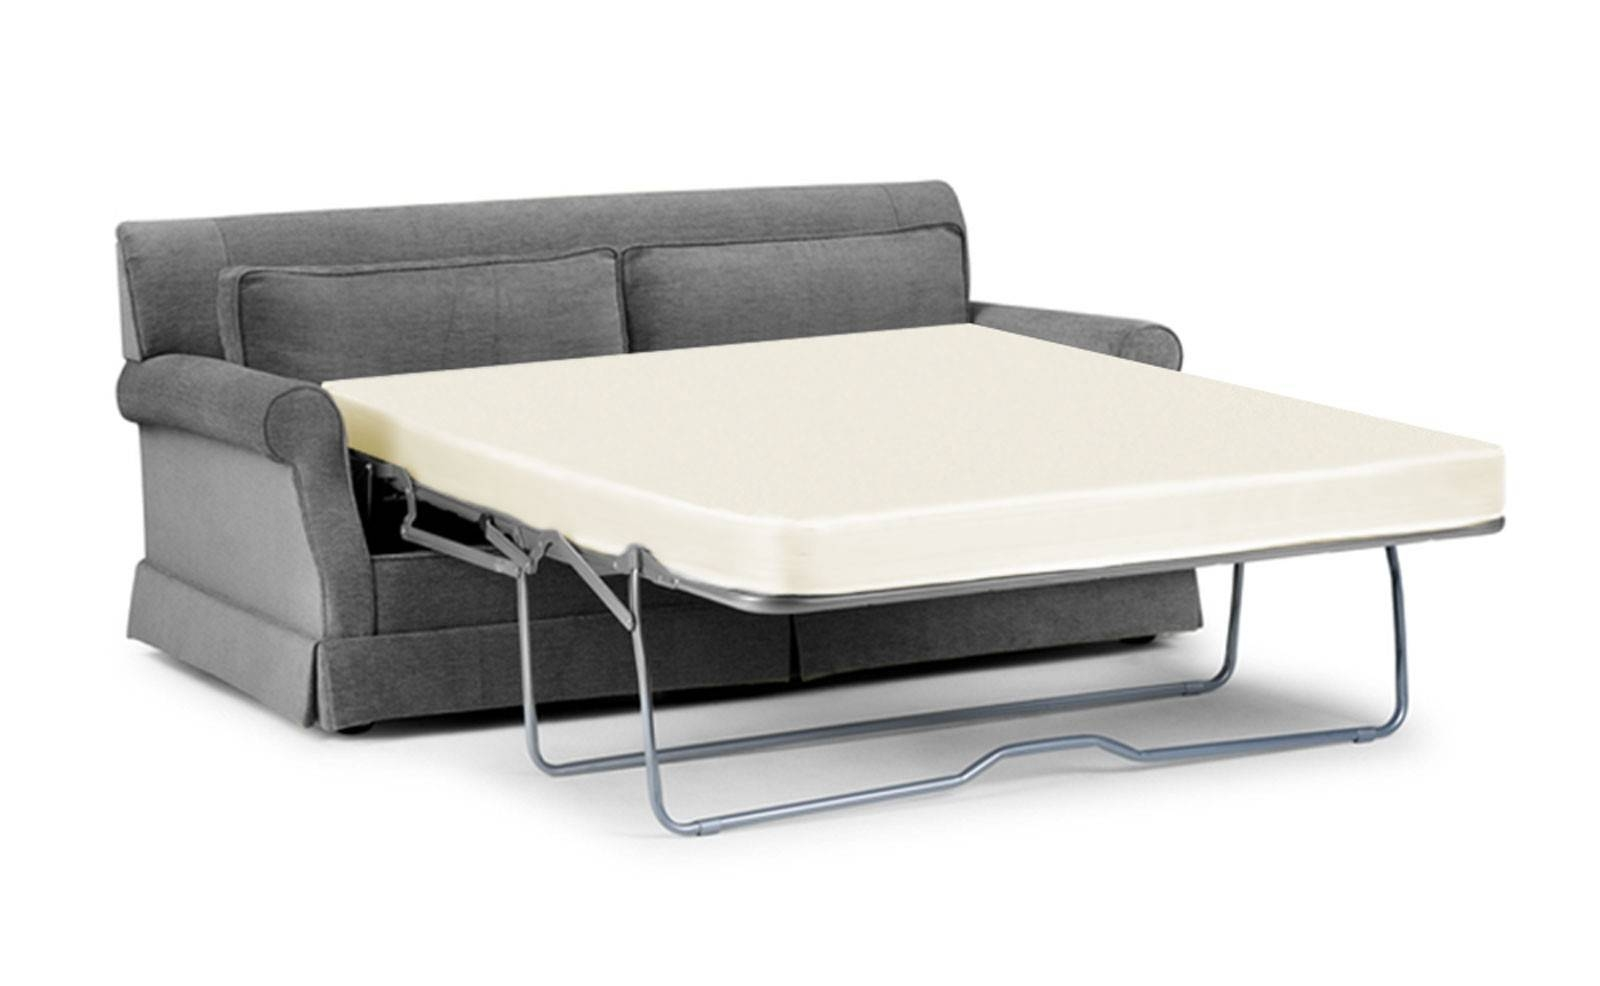 Mattress For Sofa Sleeper And Sleeper Sofas Sofa Beds 22 Image 15 Pertaining To Sofa Bed Sleepers (View 11 of 30)